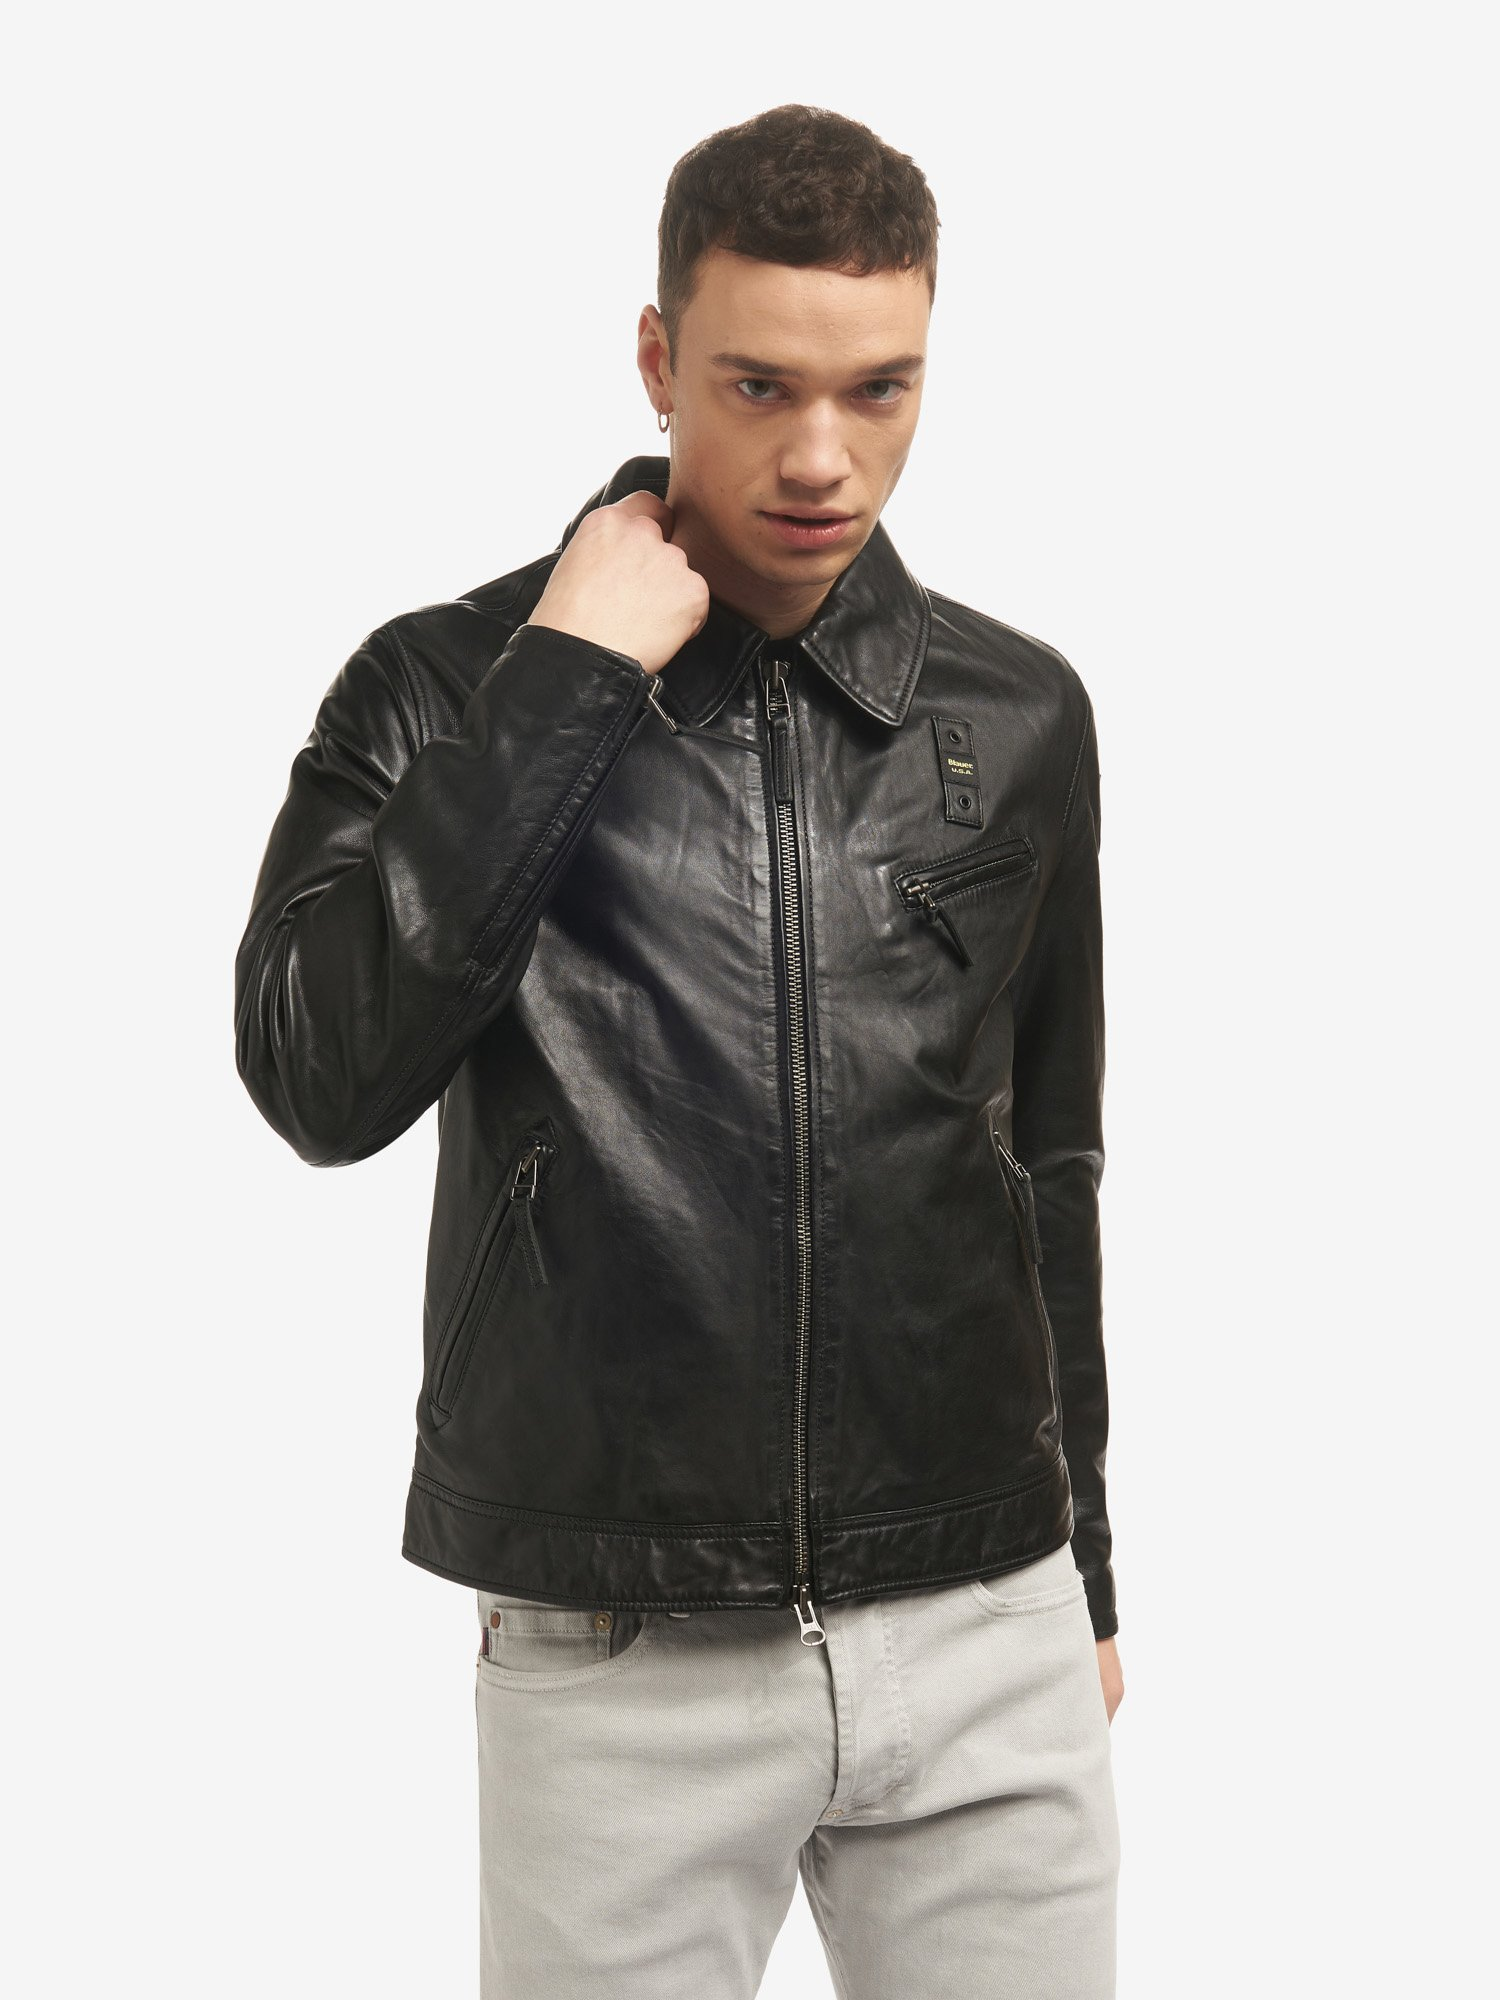 TOM LINED LEATHER JACKET - Blauer